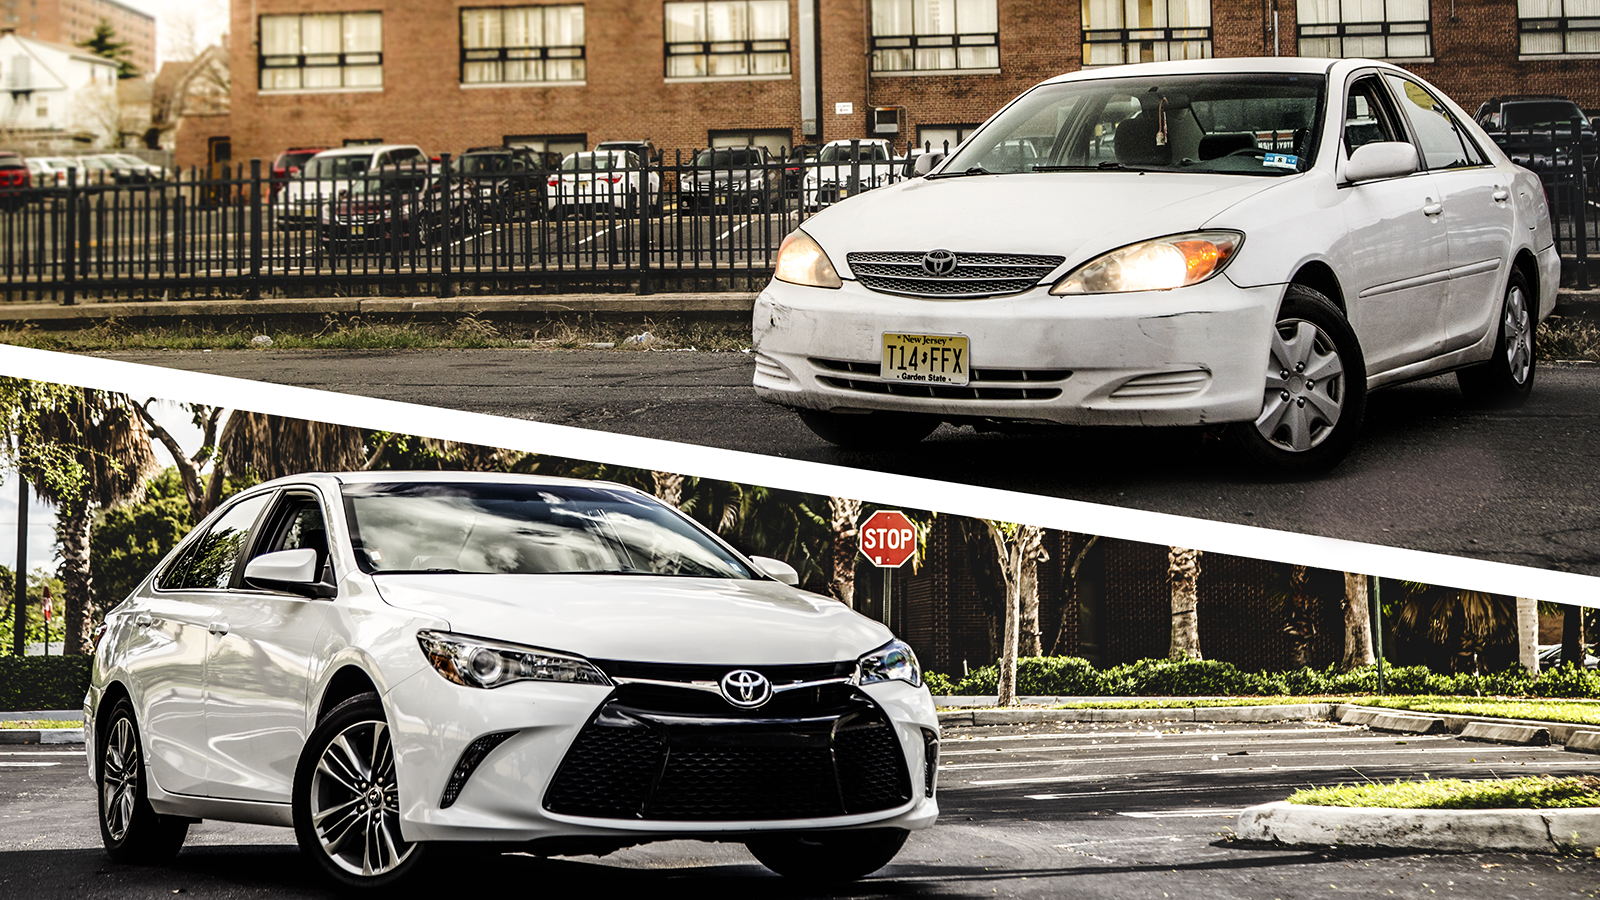 twbtgce3chgxqpltancj the incredible mystery of the 'camry dent'